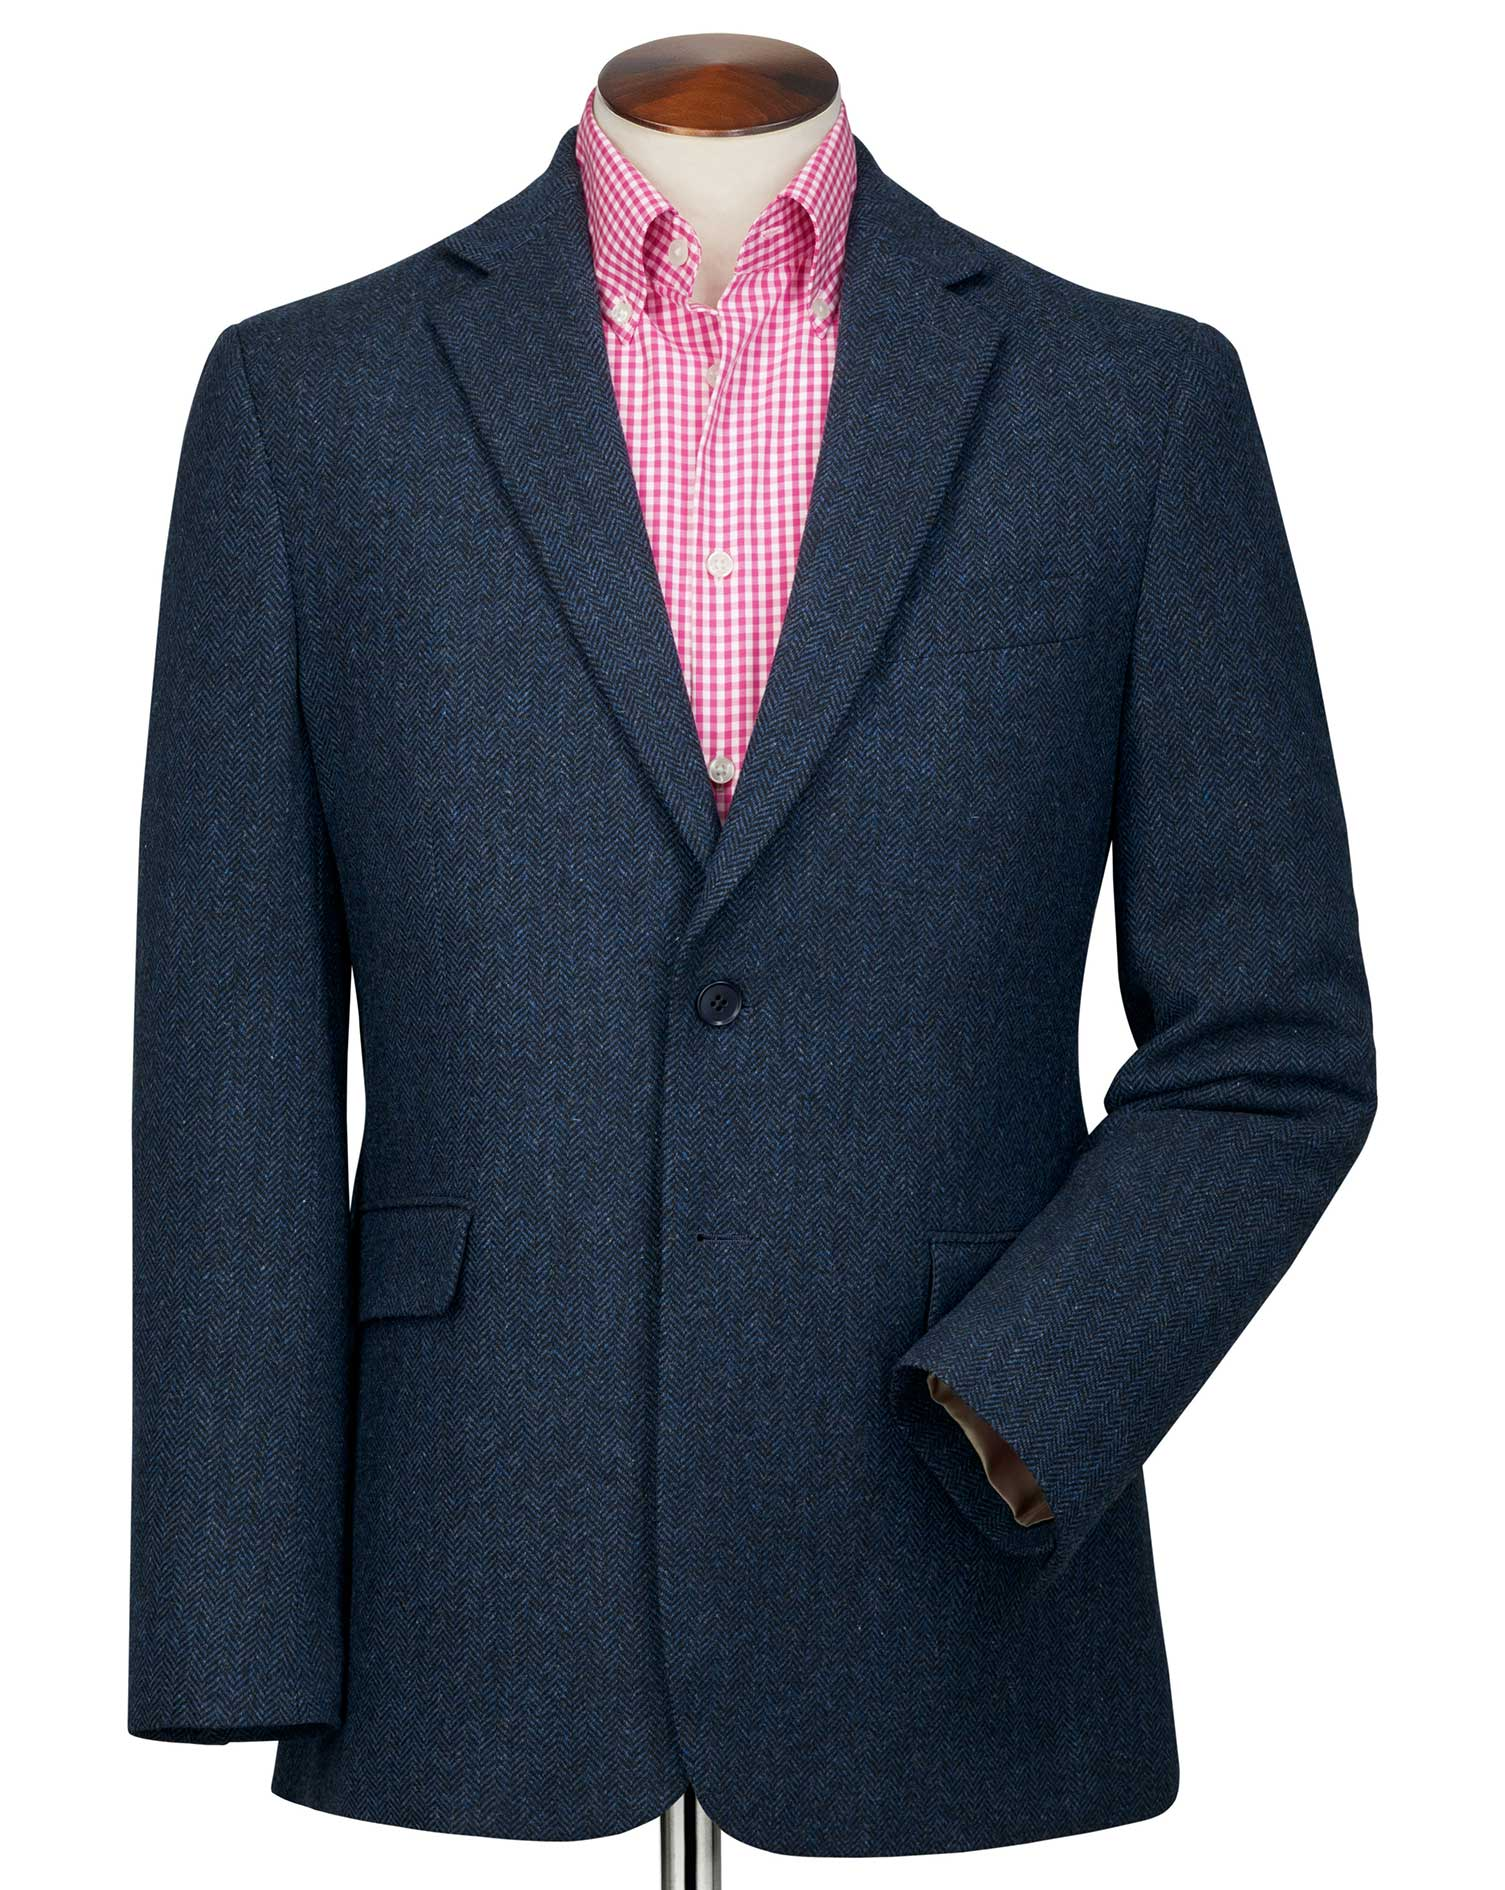 Slim Fit Blue Herringbone Wool Wool Jacket Size 38 Regular by Charles Tyrwhitt